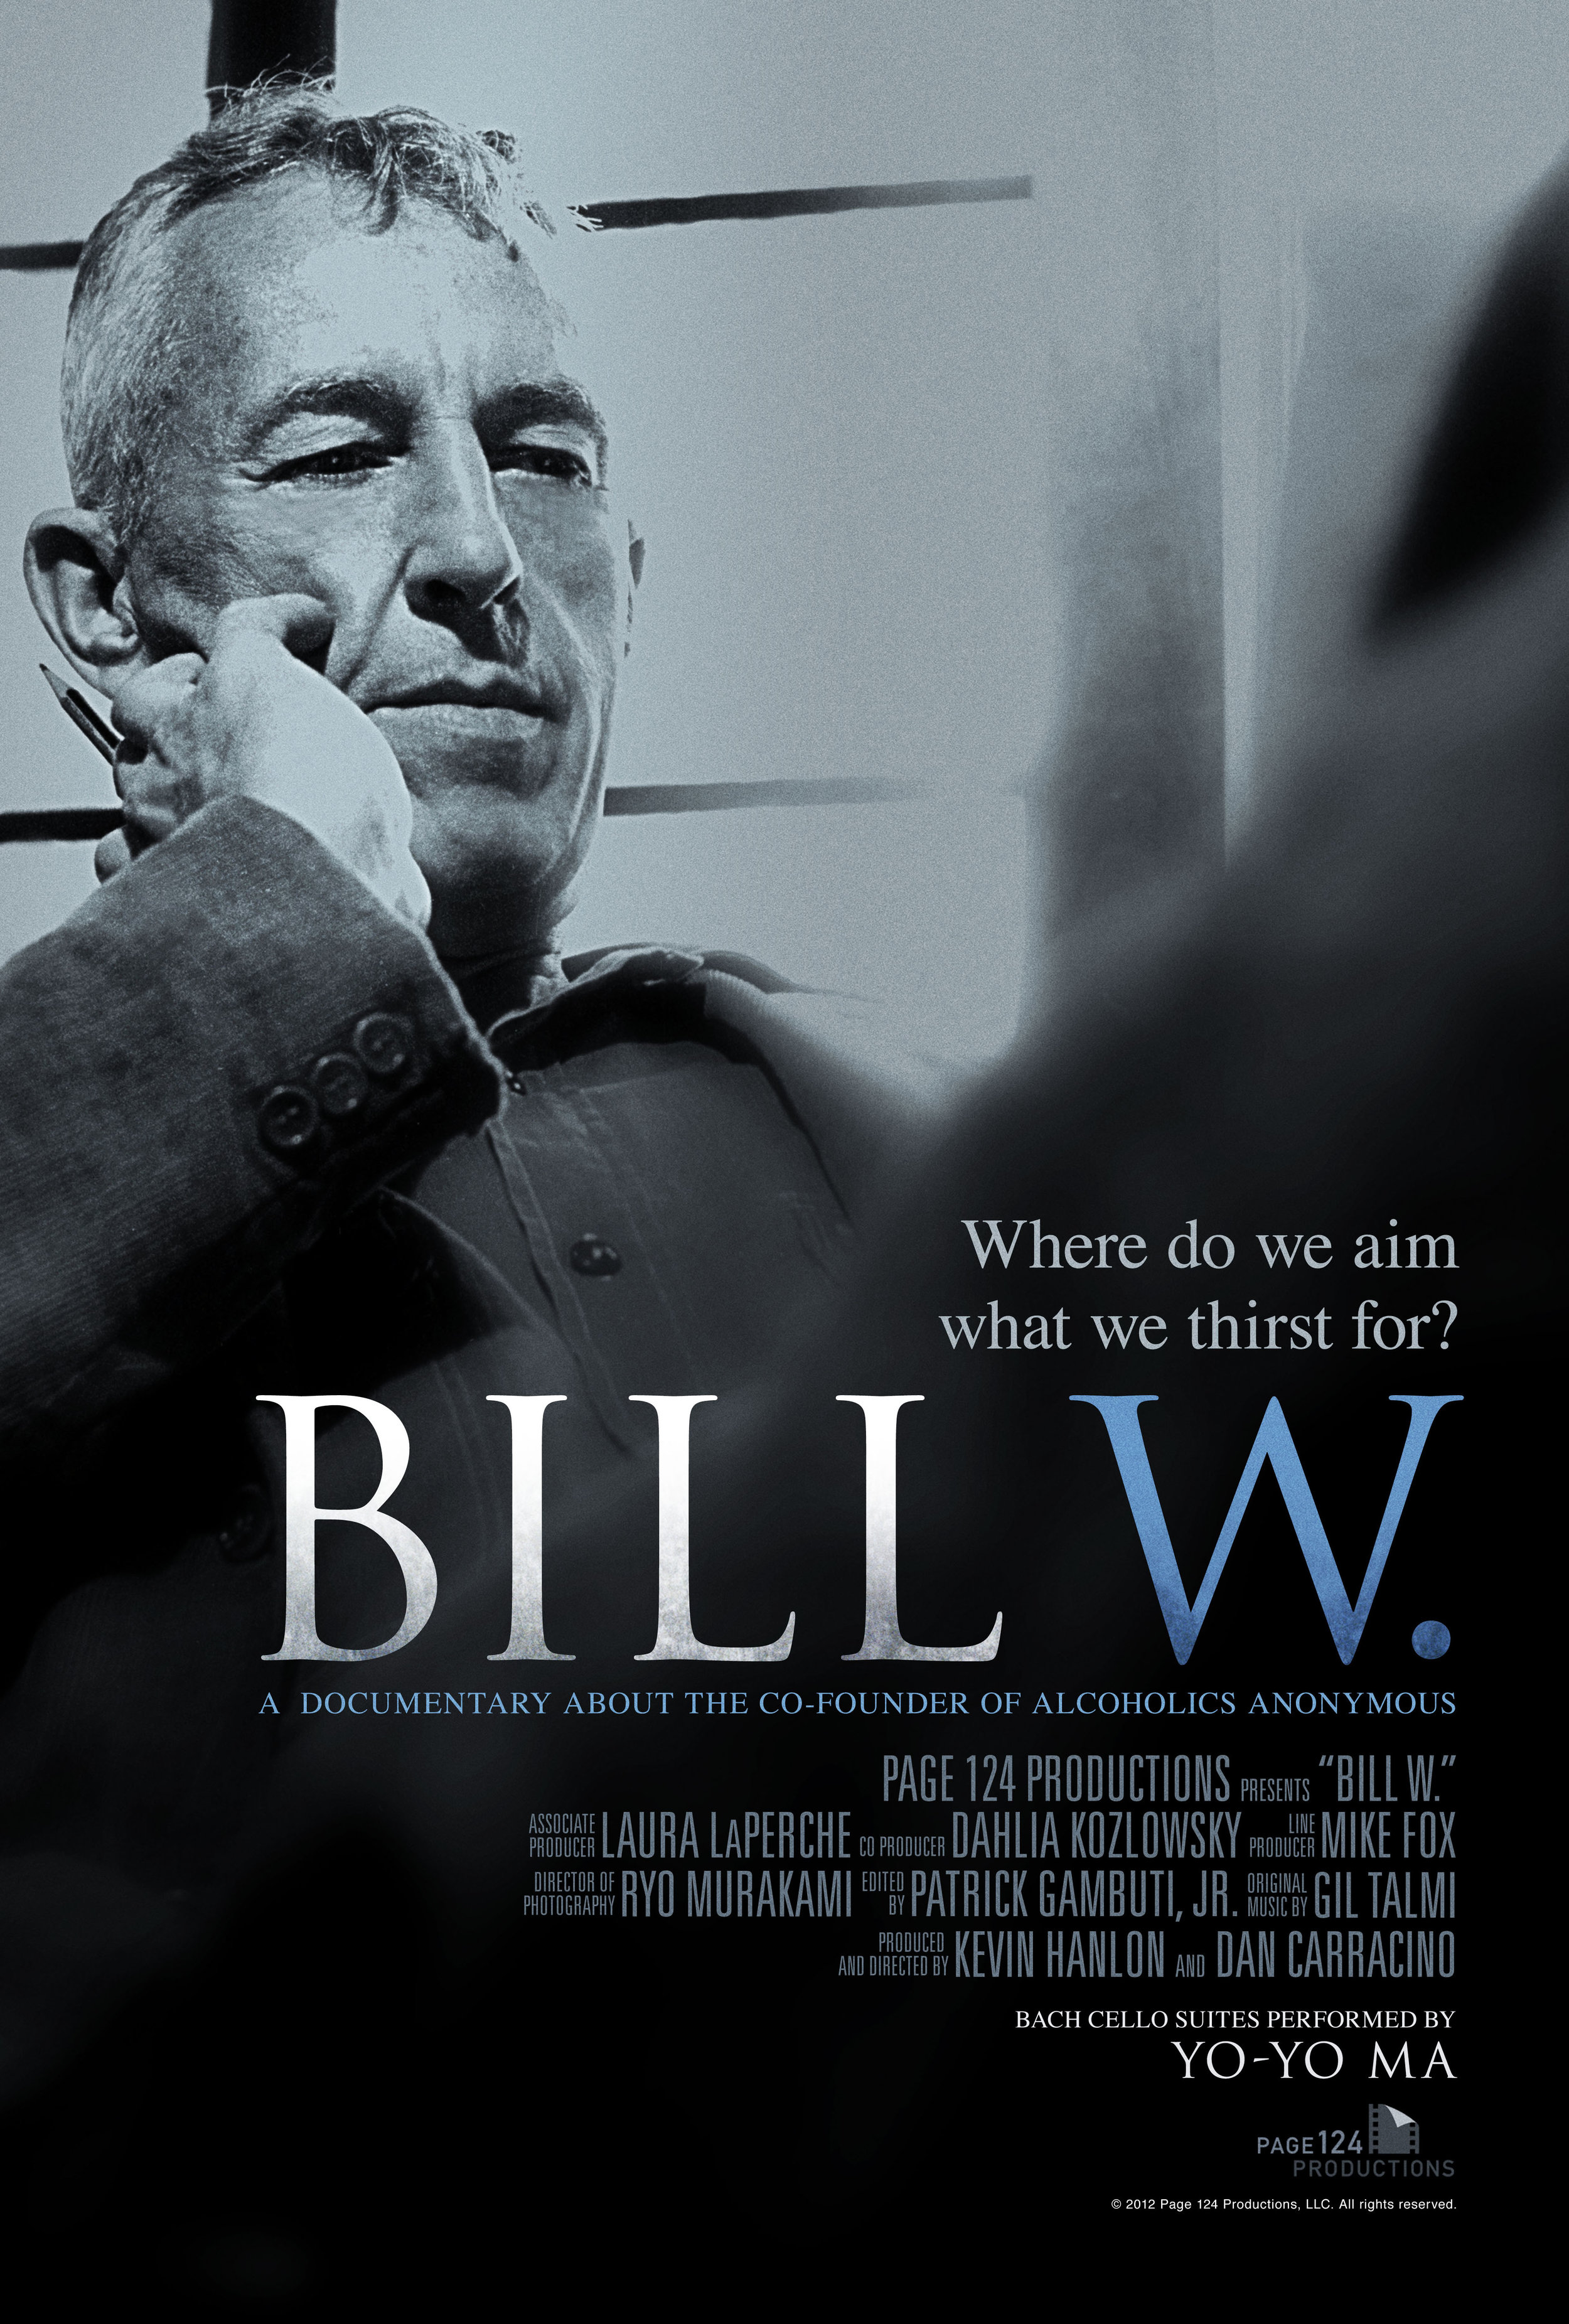 Bill W copy.jpeg